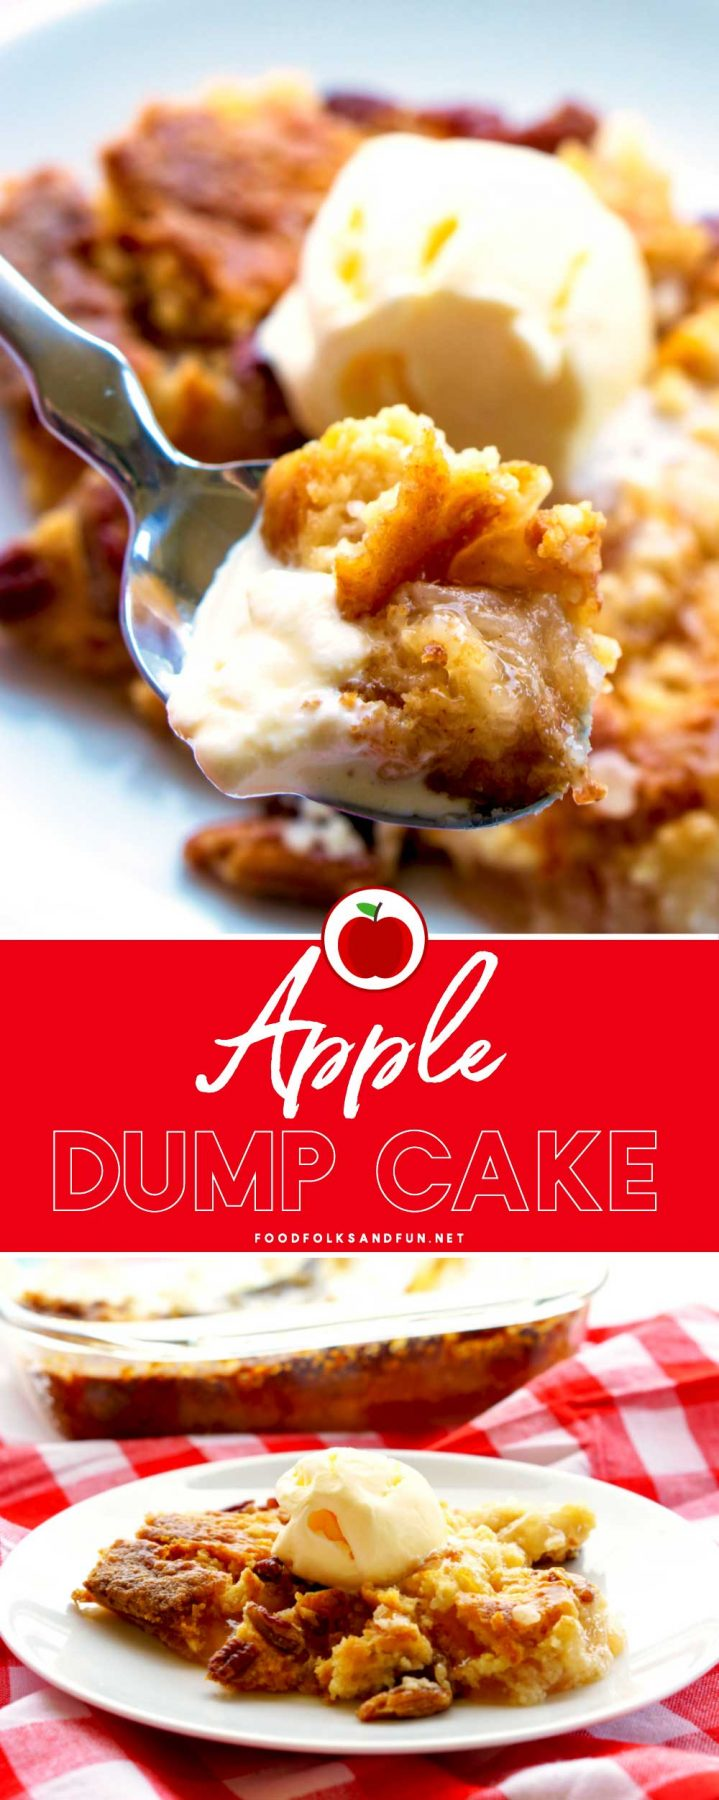 Apple Dump Cake is an easy and irresistible dessert that's made with just 4 ingredients: apple pie filling, cake mix, pecans, and butter! via @foodfolksandfun